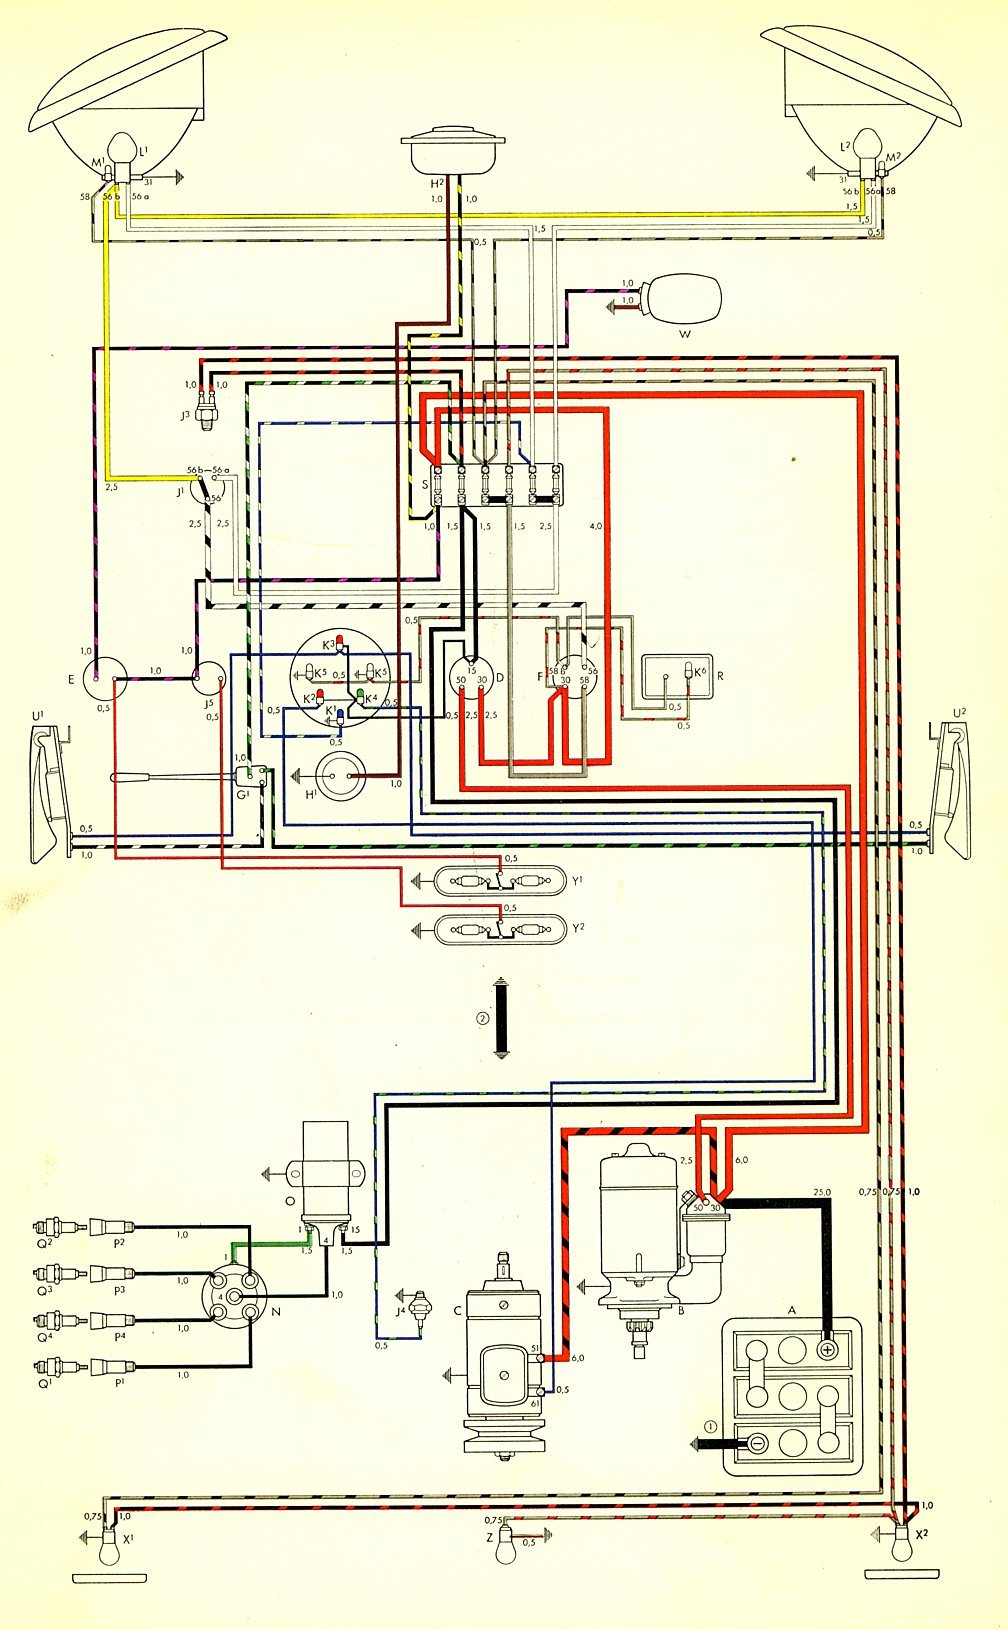 bus_59 bus wiring diagram vw wiring harness diagram \u2022 wiring diagrams j 1971 vw bus wiring diagram at mifinder.co